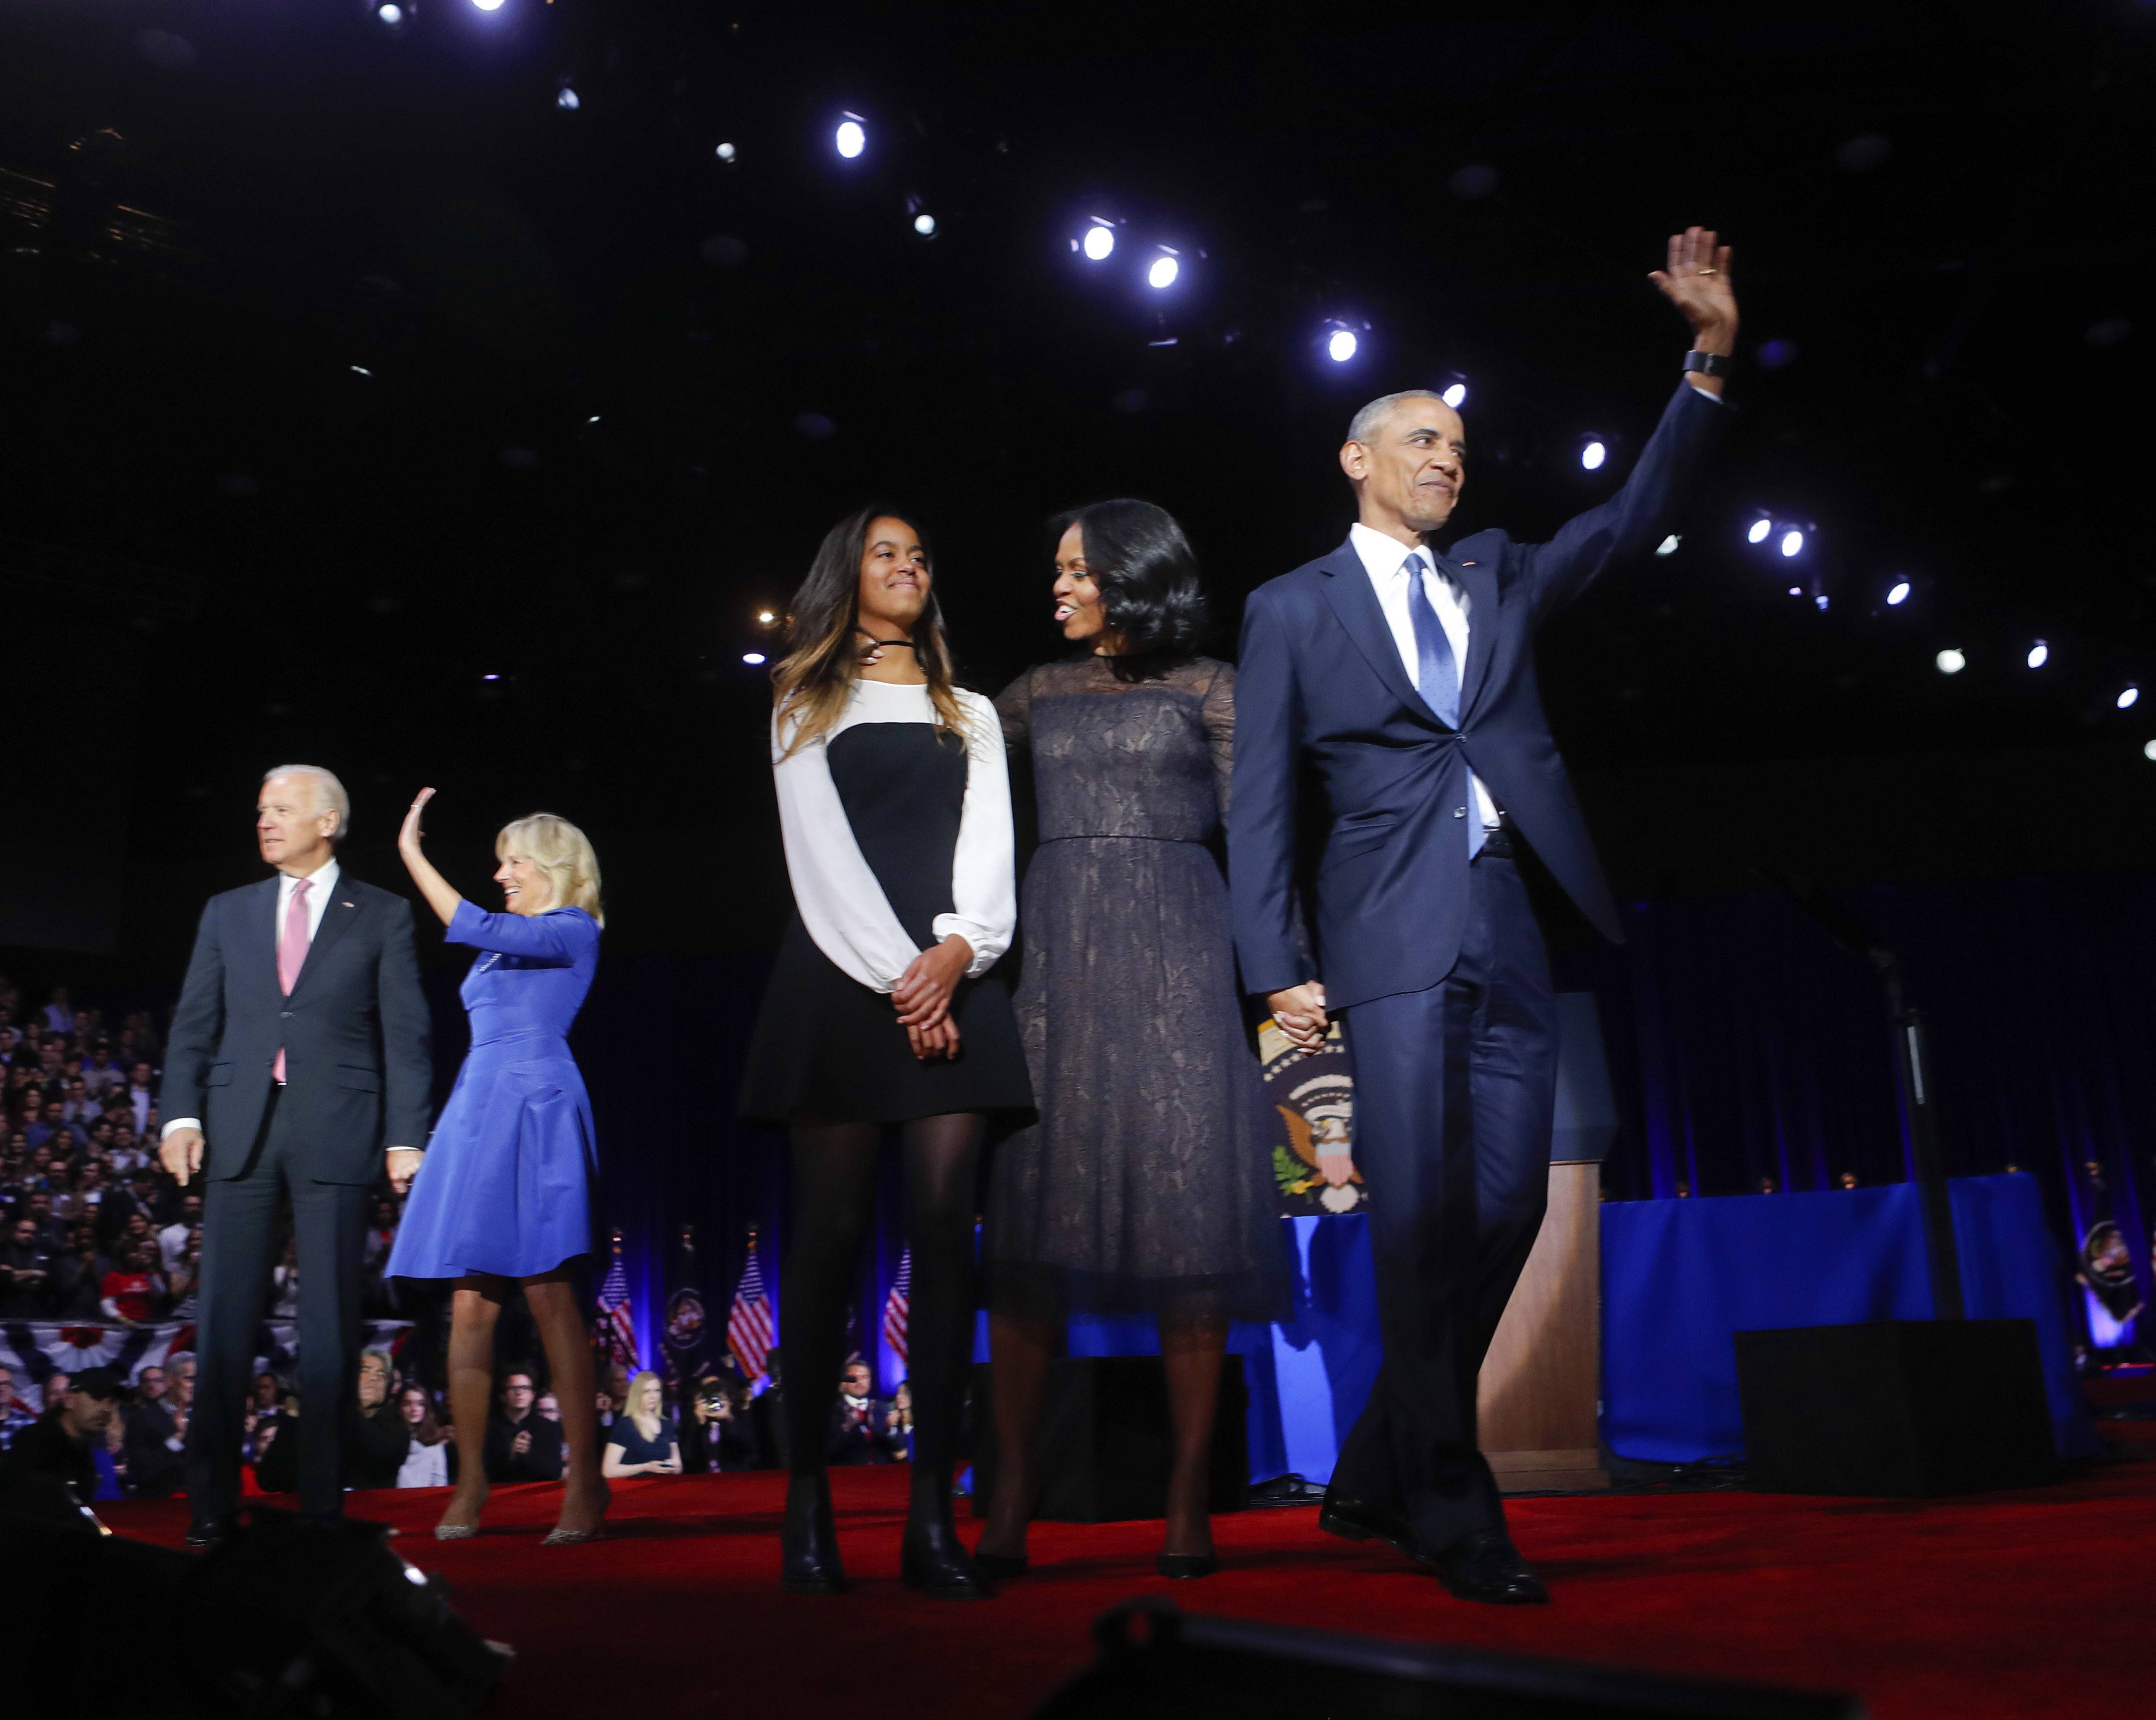 Images: President Barack Obama gave his farewell address in Chicago Tuesday